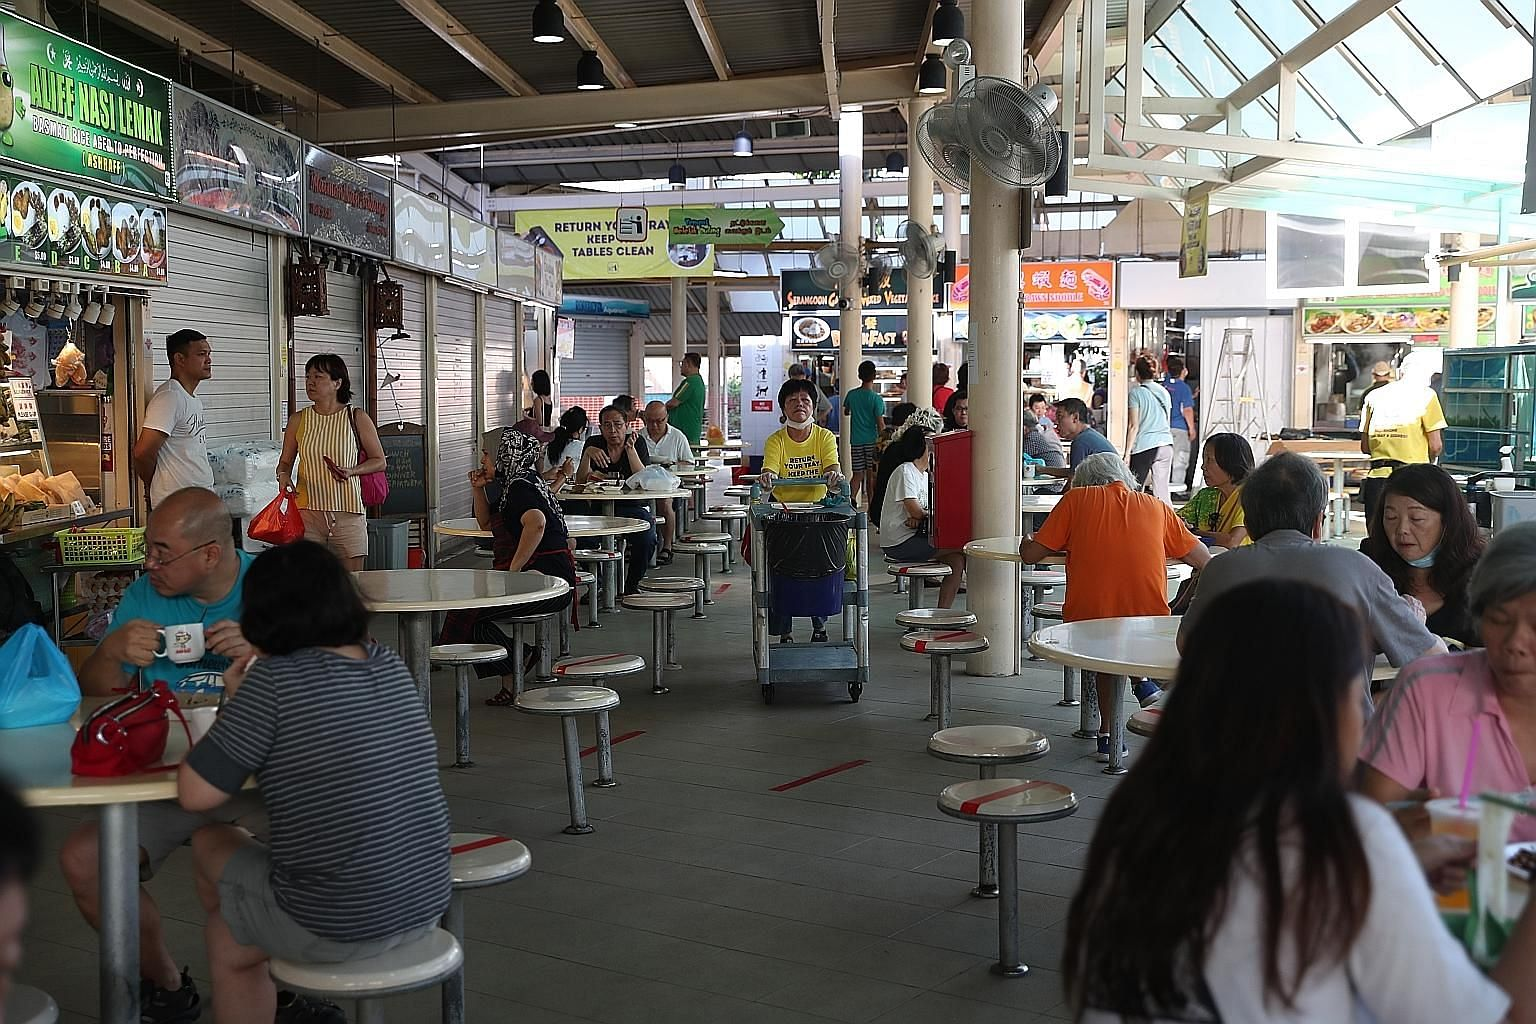 Diners observing social distancing at Serangoon Garden food centre. While takeaways will still be allowed when the ban on eating out kicks in on Tuesday, operators worry that business will slow to unsustainable levels as workplaces close and Singapor